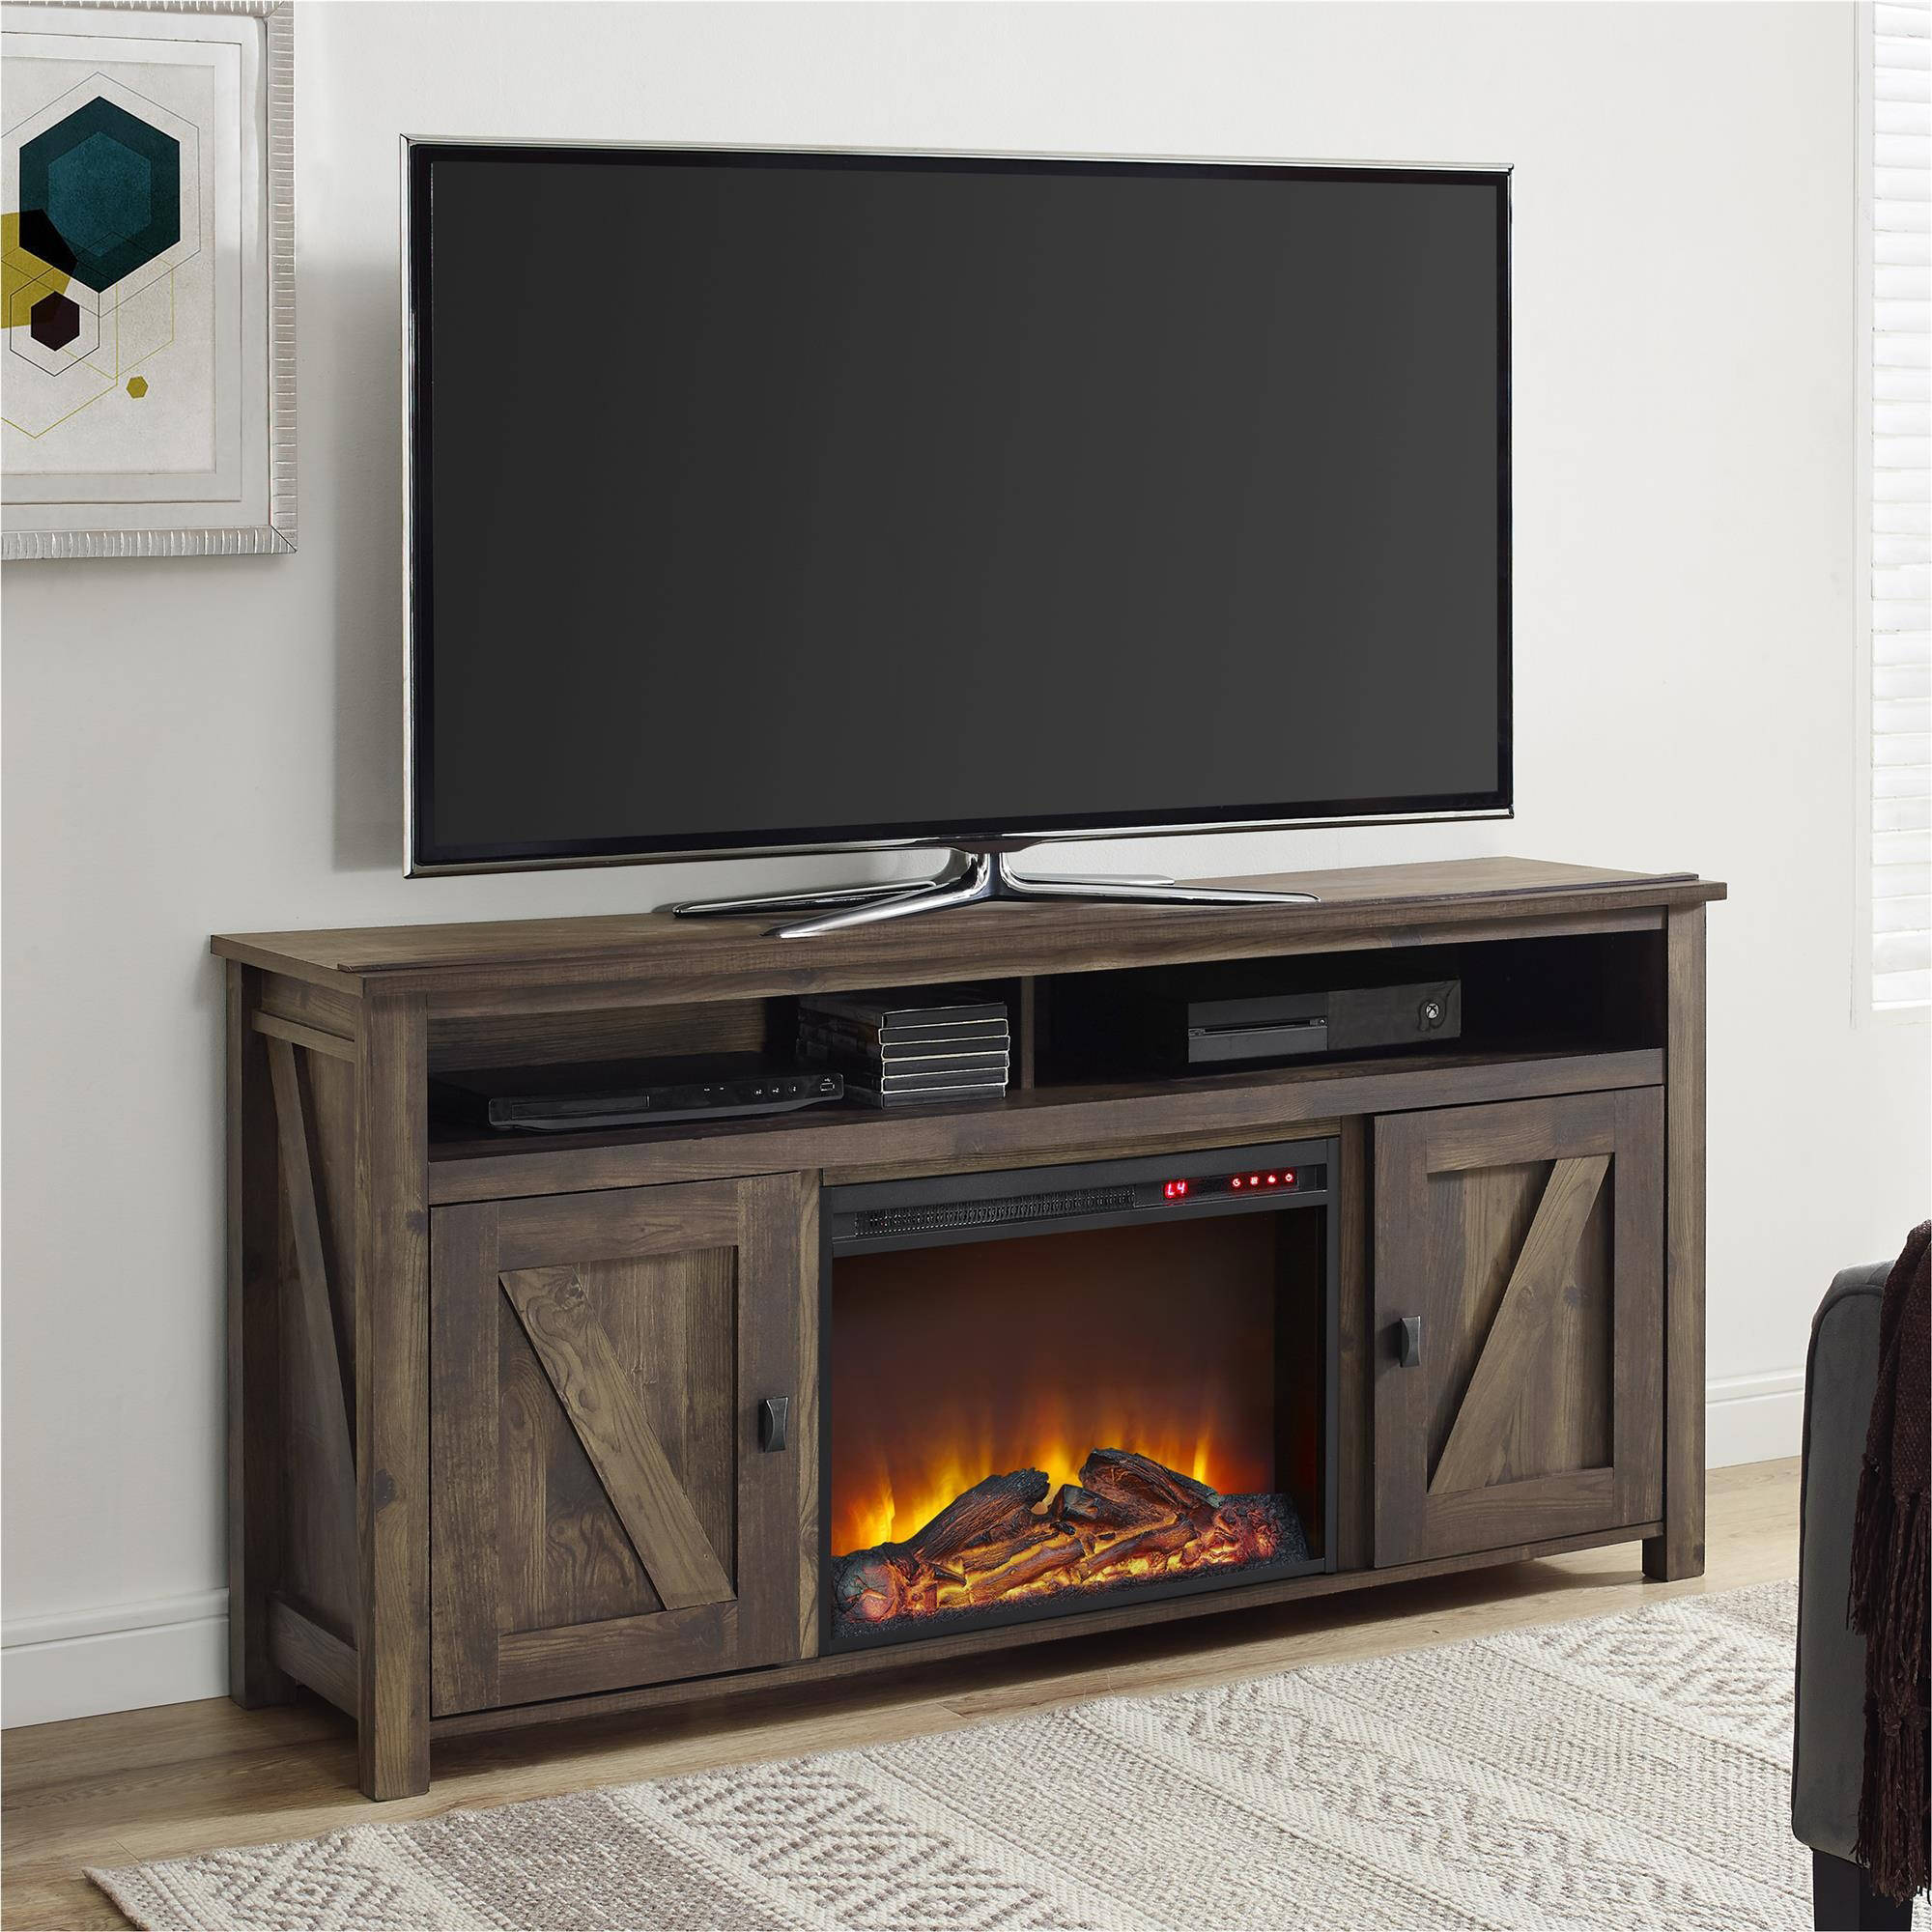 fireplace linear fireplaces wall in hanging mounted mount wallmount electric synergy ca dimplex designs